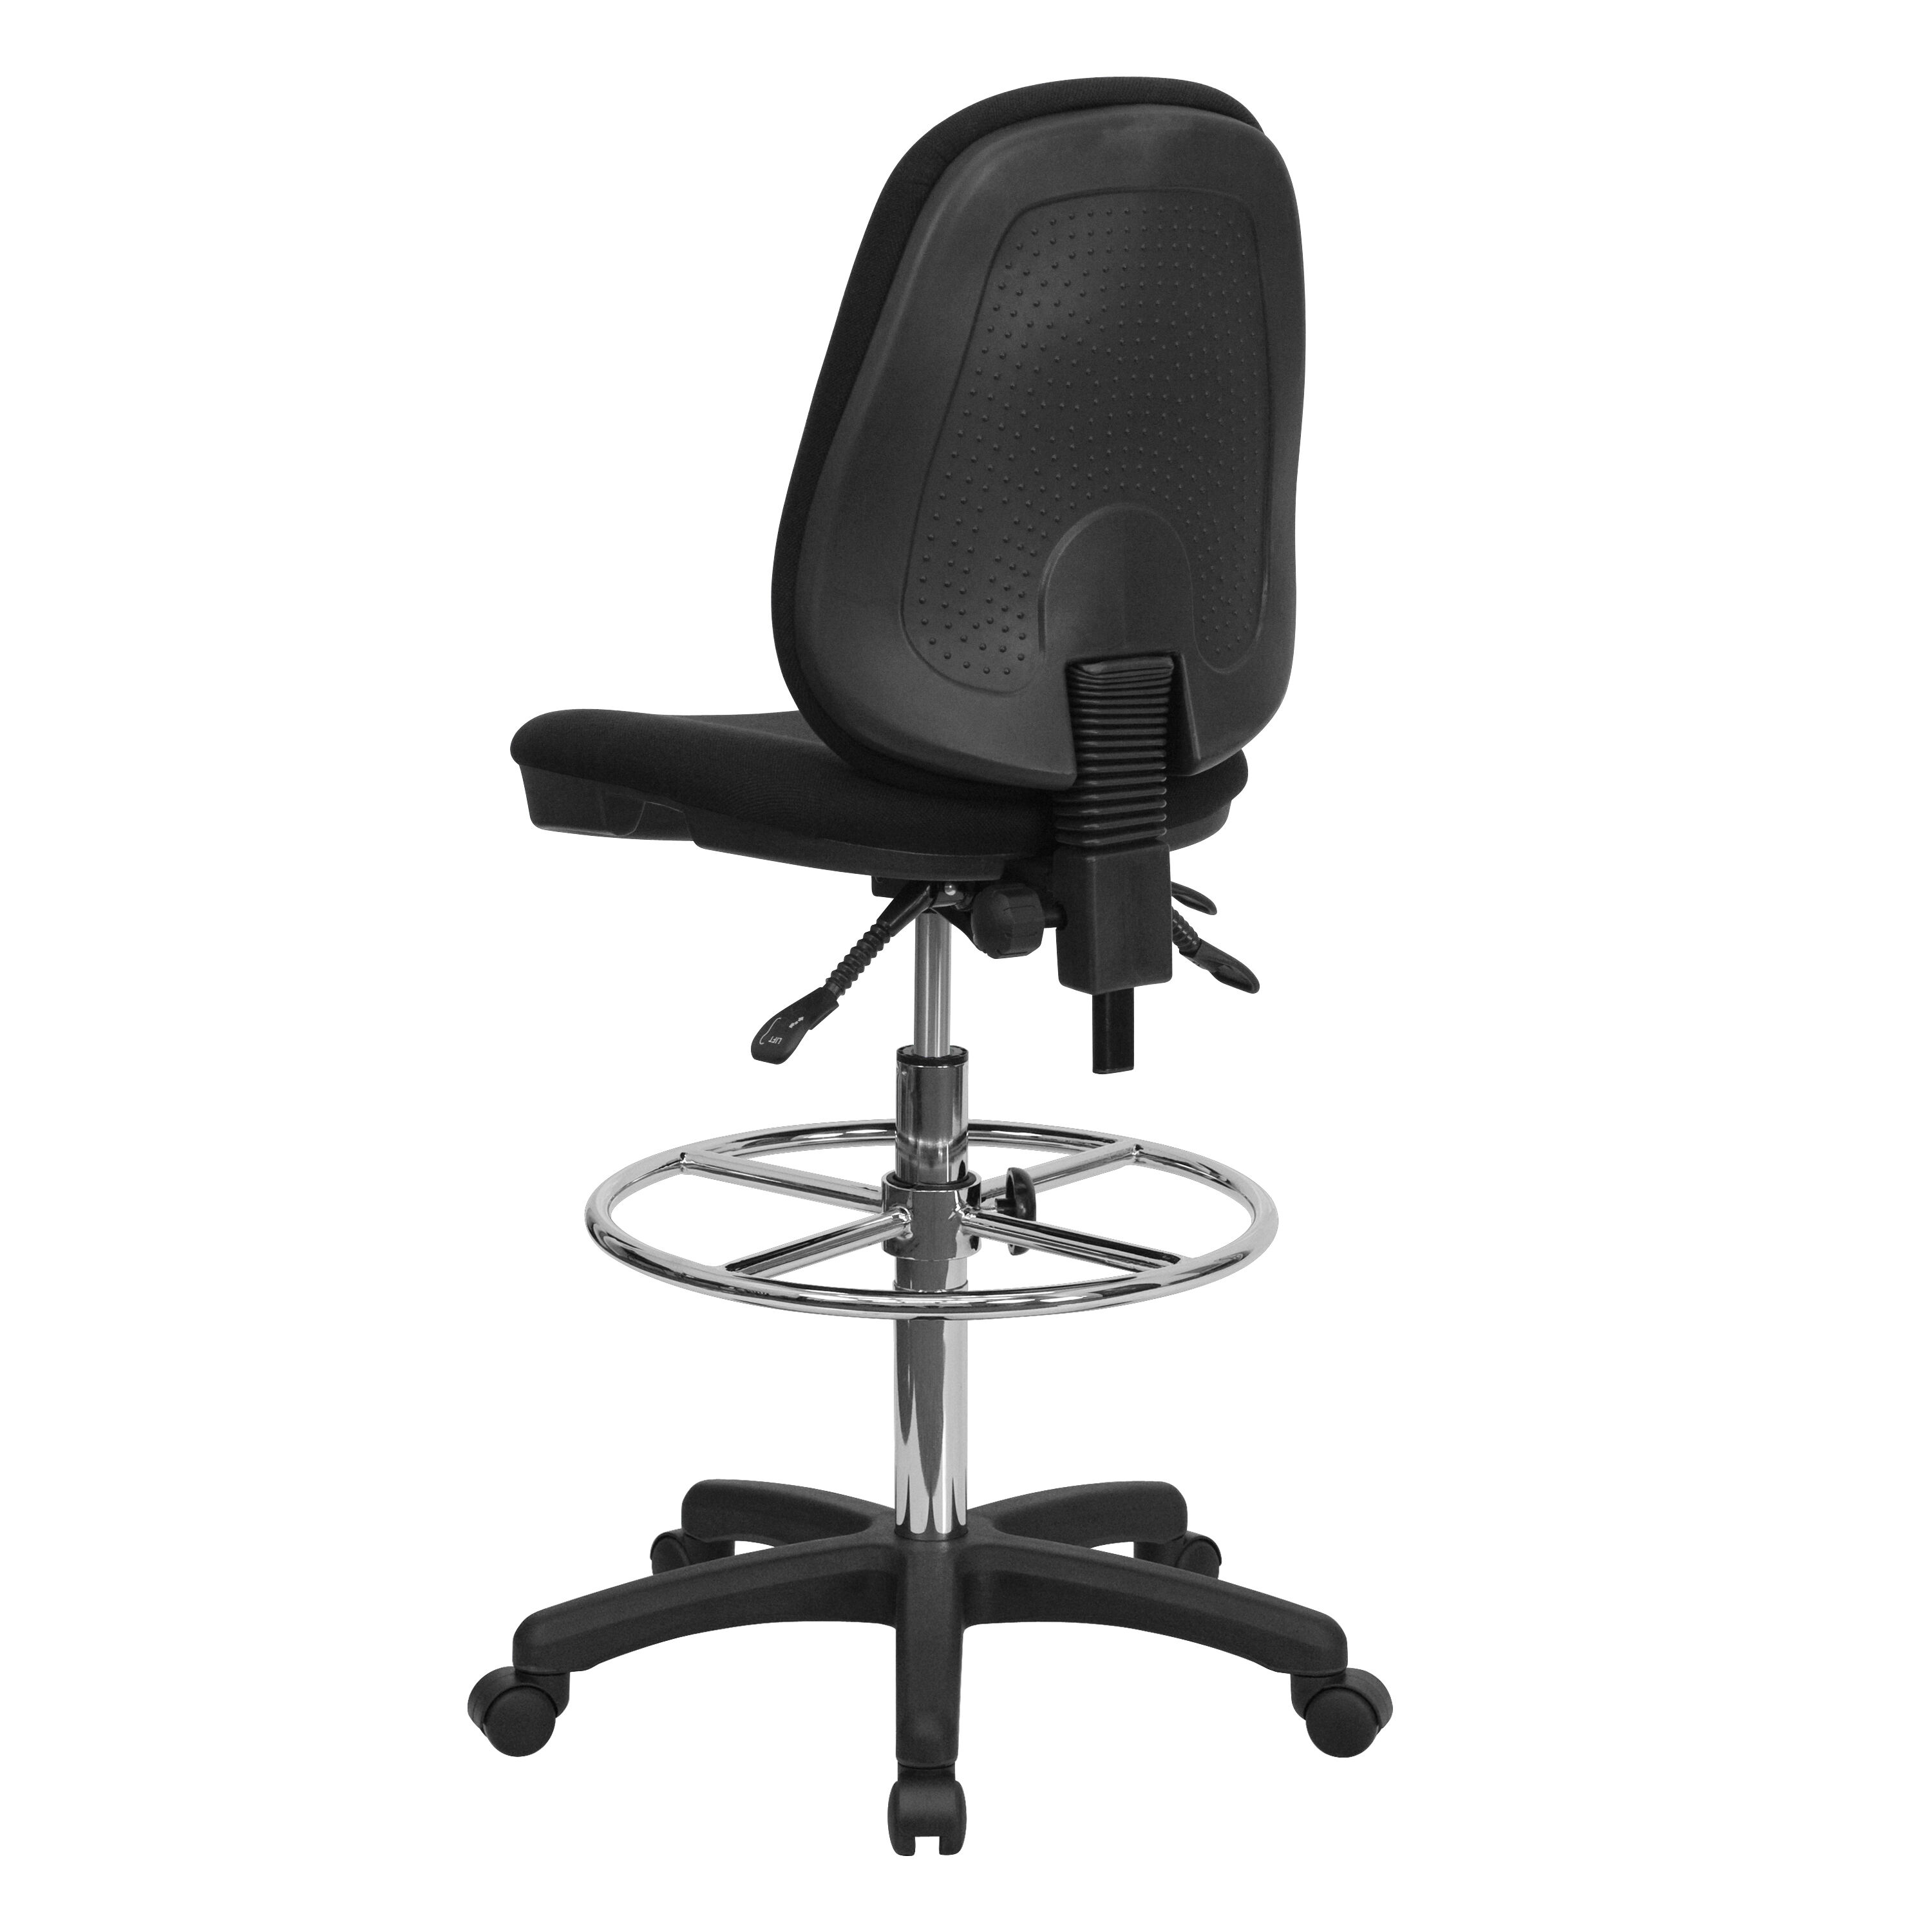 Our Black Multifunction Ergonomic Drafting Chair With Adjustable Foot Ring  Is On Sale Now.